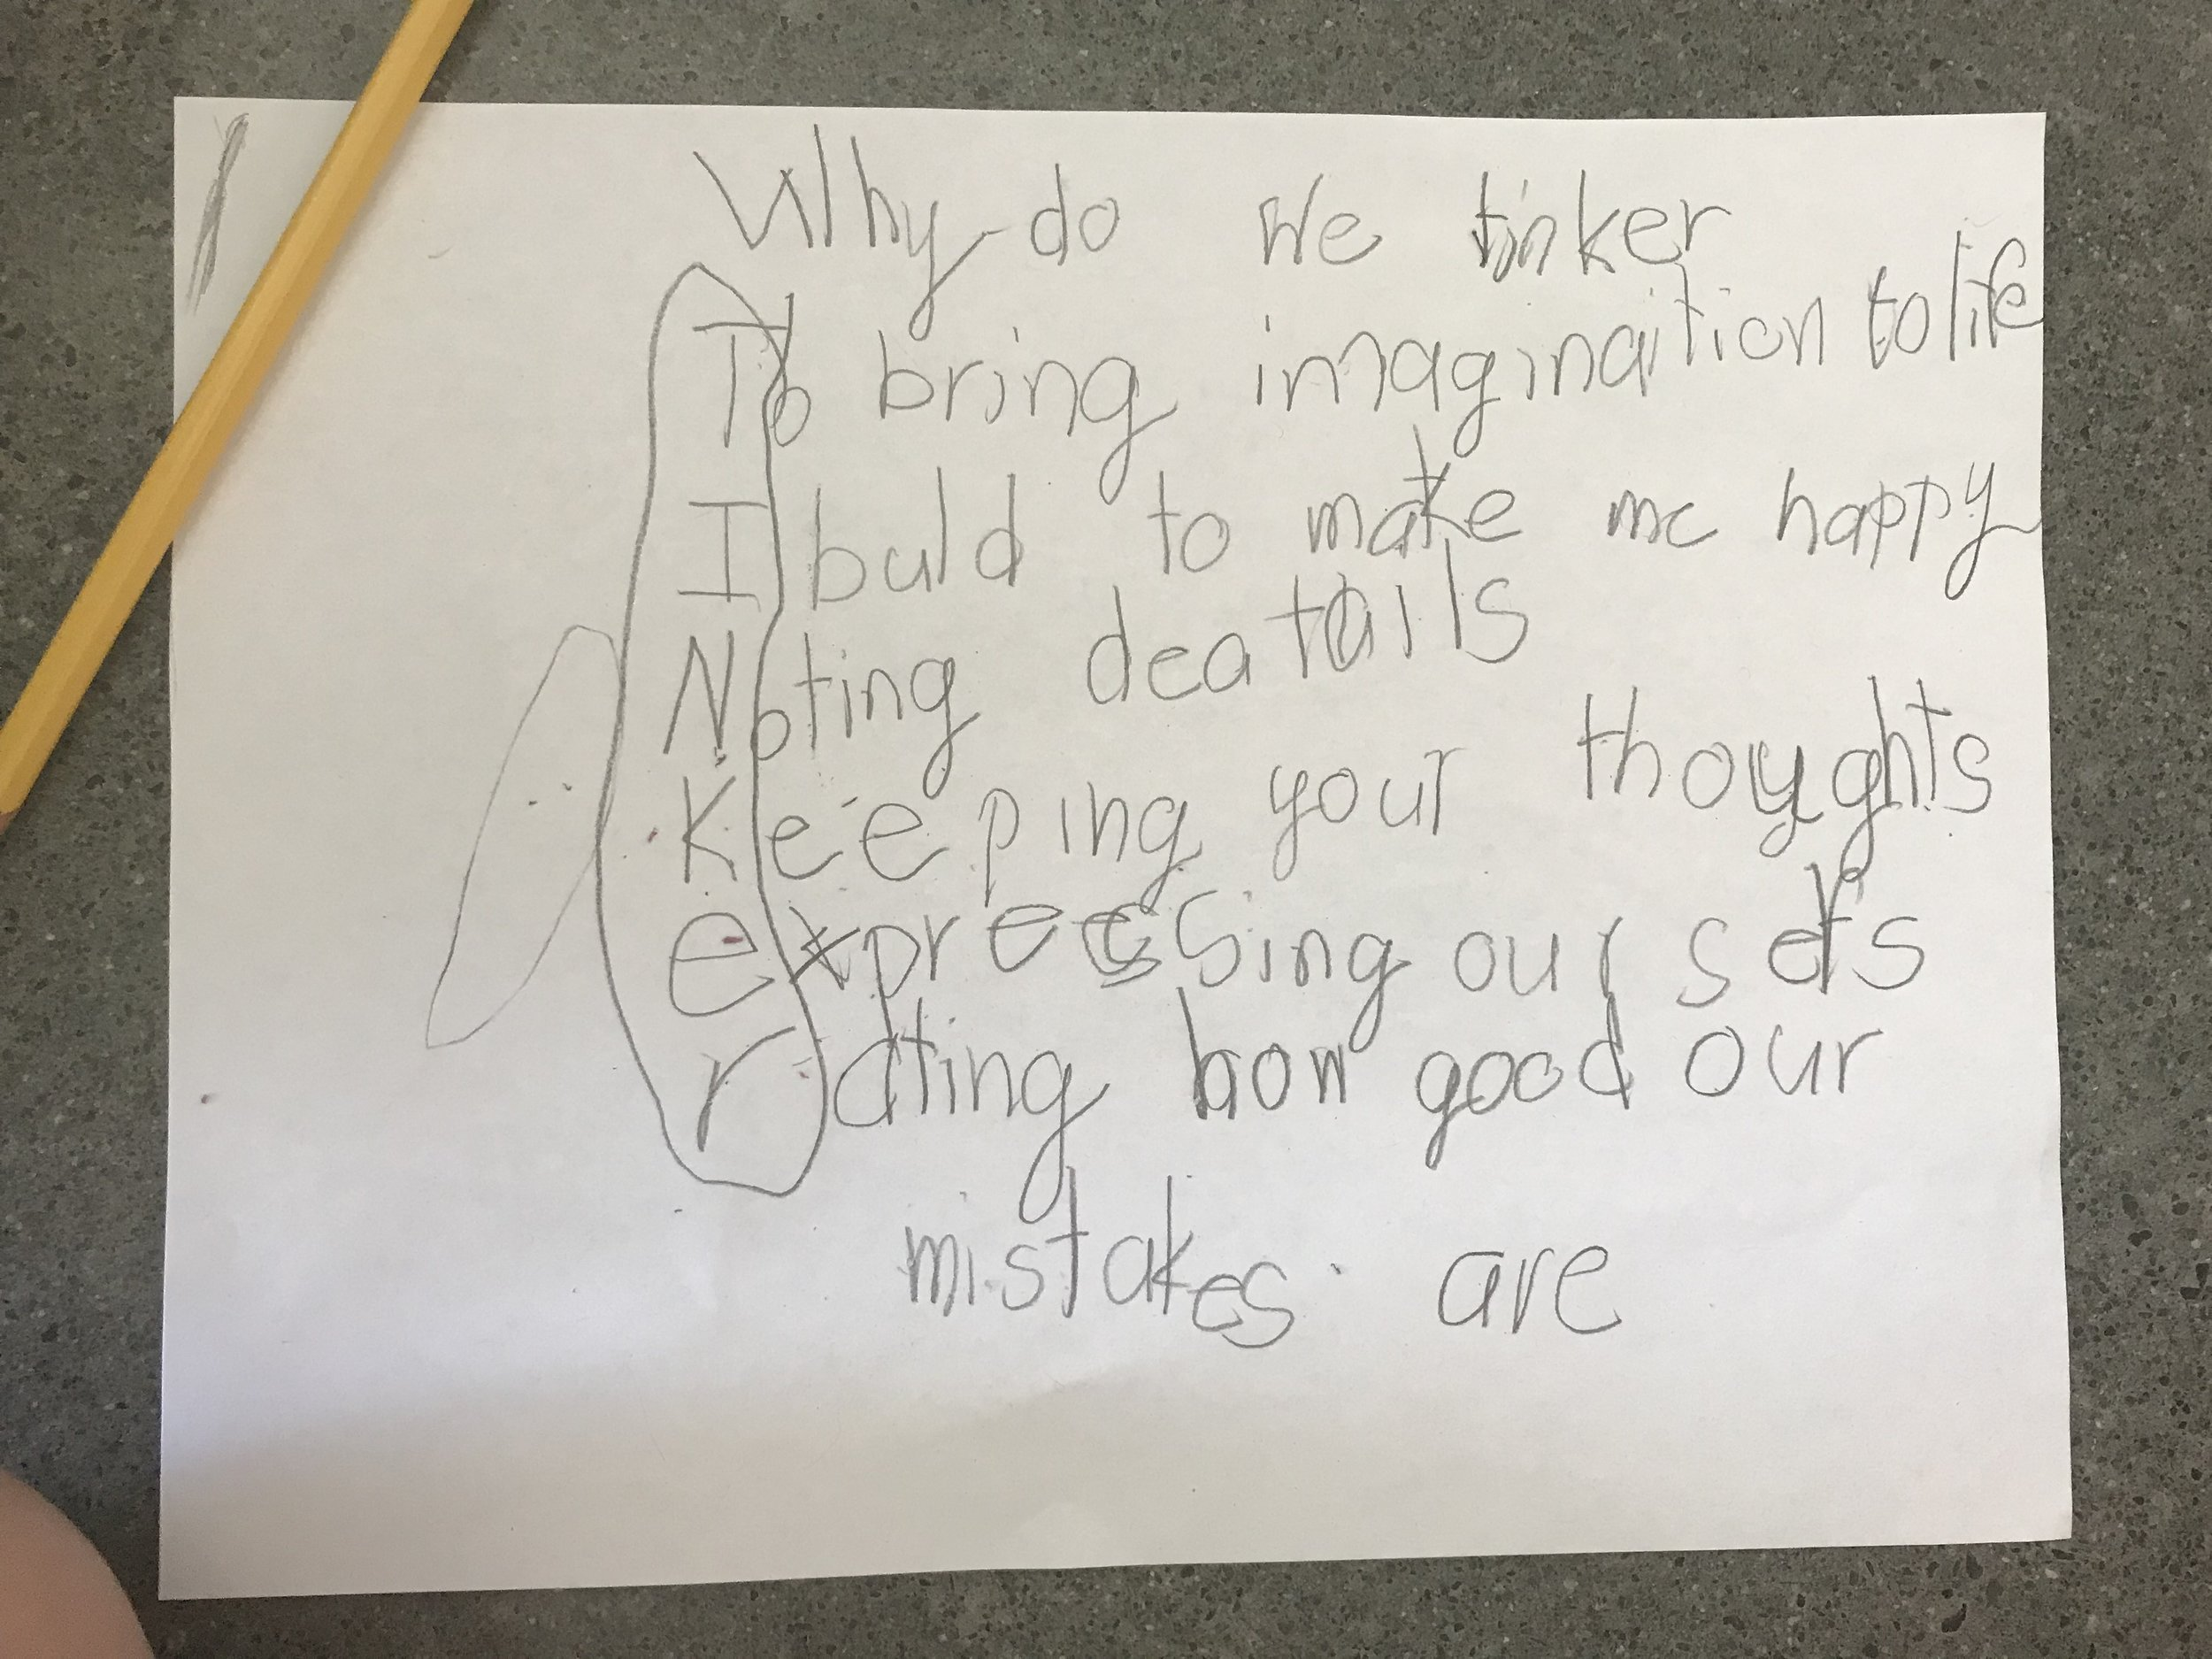 Why do we tinker? We got a lot of insightful answers, and this amazingly creative AND insightful one!